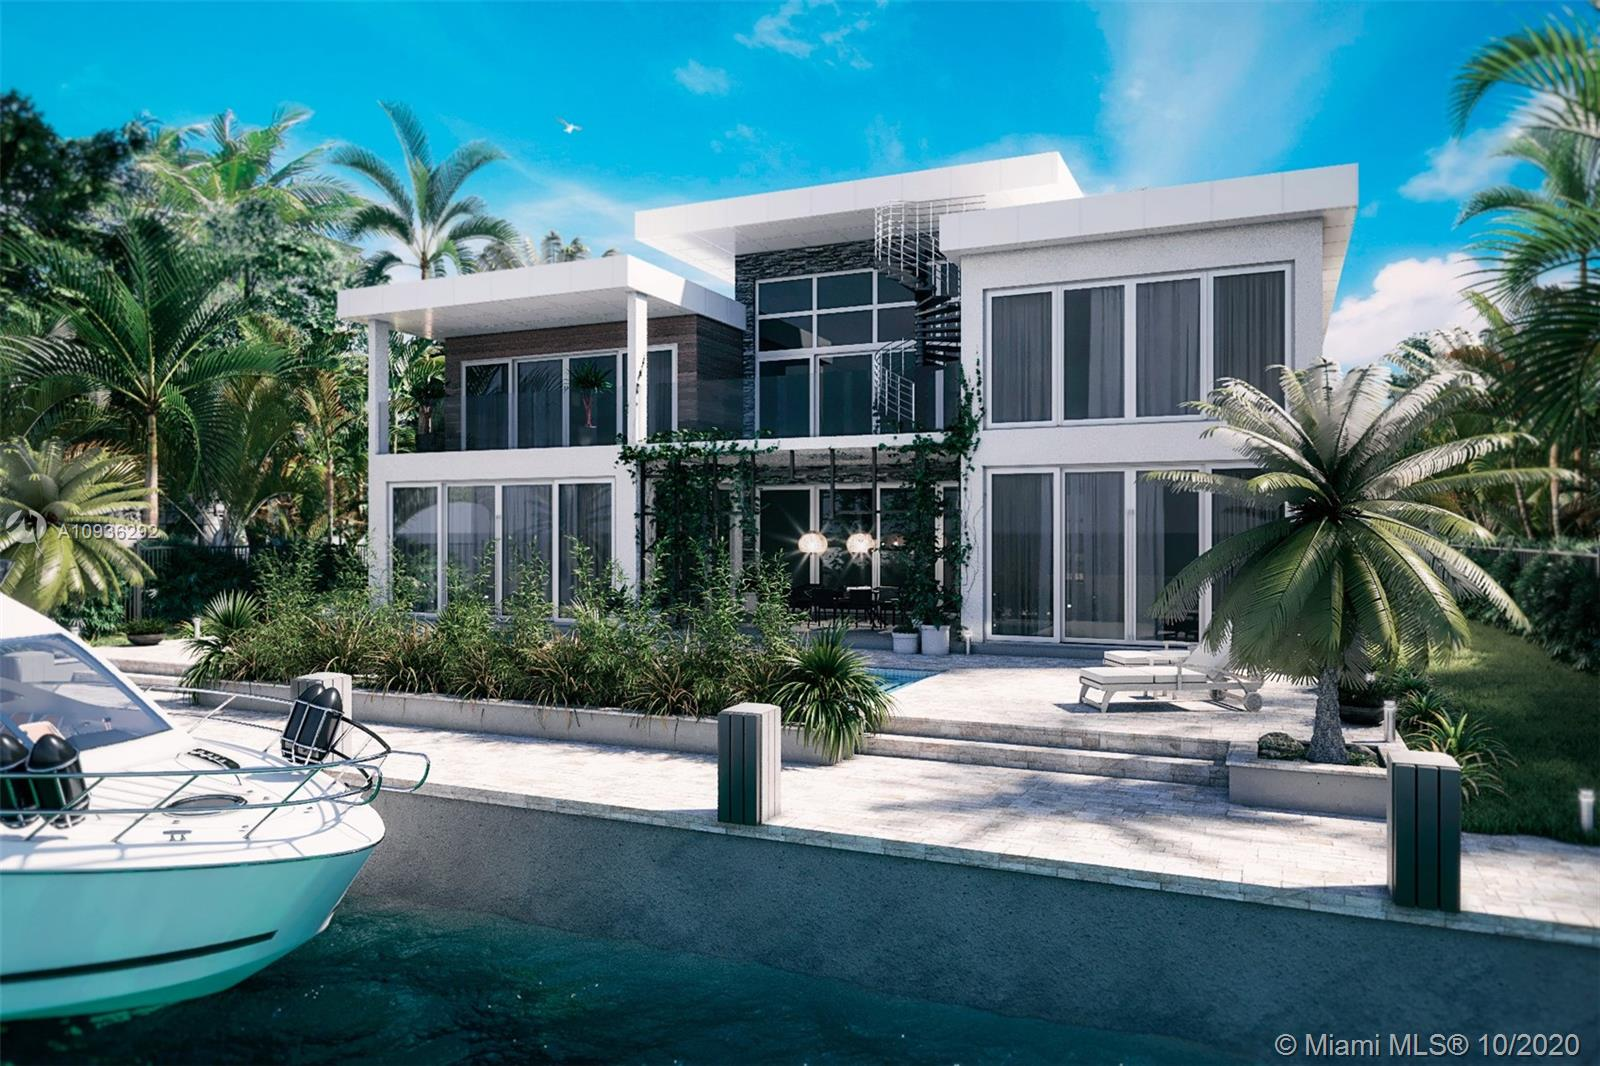 """NEW CONSTRUCTION!!Ft Lauderdale's most prestigious waterfront neighborhoods of Nurmi Isles. CONTEMPORARY 6 BED+LOFT+THEATER/BONUS RM,6.5 BATHS,3 CG, INFINITY POOL & 85 FT DOCKAGE. LINEAR FIREPLACE, MARBLE IN living areas, ESPRESSO WOOD FLOORS IN ALL BEDS. STATE OF THE ART GOURMET CHEF'S Kitchen, SS, 48"""" BUILT-IN REF,6 BURNER GAS COOKTOP, DBL OVENS, VENTED EXHAUST HOOD, POT FILLER & QUARTZ COUNTERTOPS. MASTER BED WITH WALK-IN CLOSET, SITTING RM &COVERED BALCONY OVERLOOKING POOL& WATER. MASTER BATH SPA SUITE WITH MARBLE FLOORS, SEPARATE HIS & HER VANITIES, JACUZZI, RAINHEAD SHOWER & BODY SPRAYS. Walk to shops & beaches, quick ocean access."""